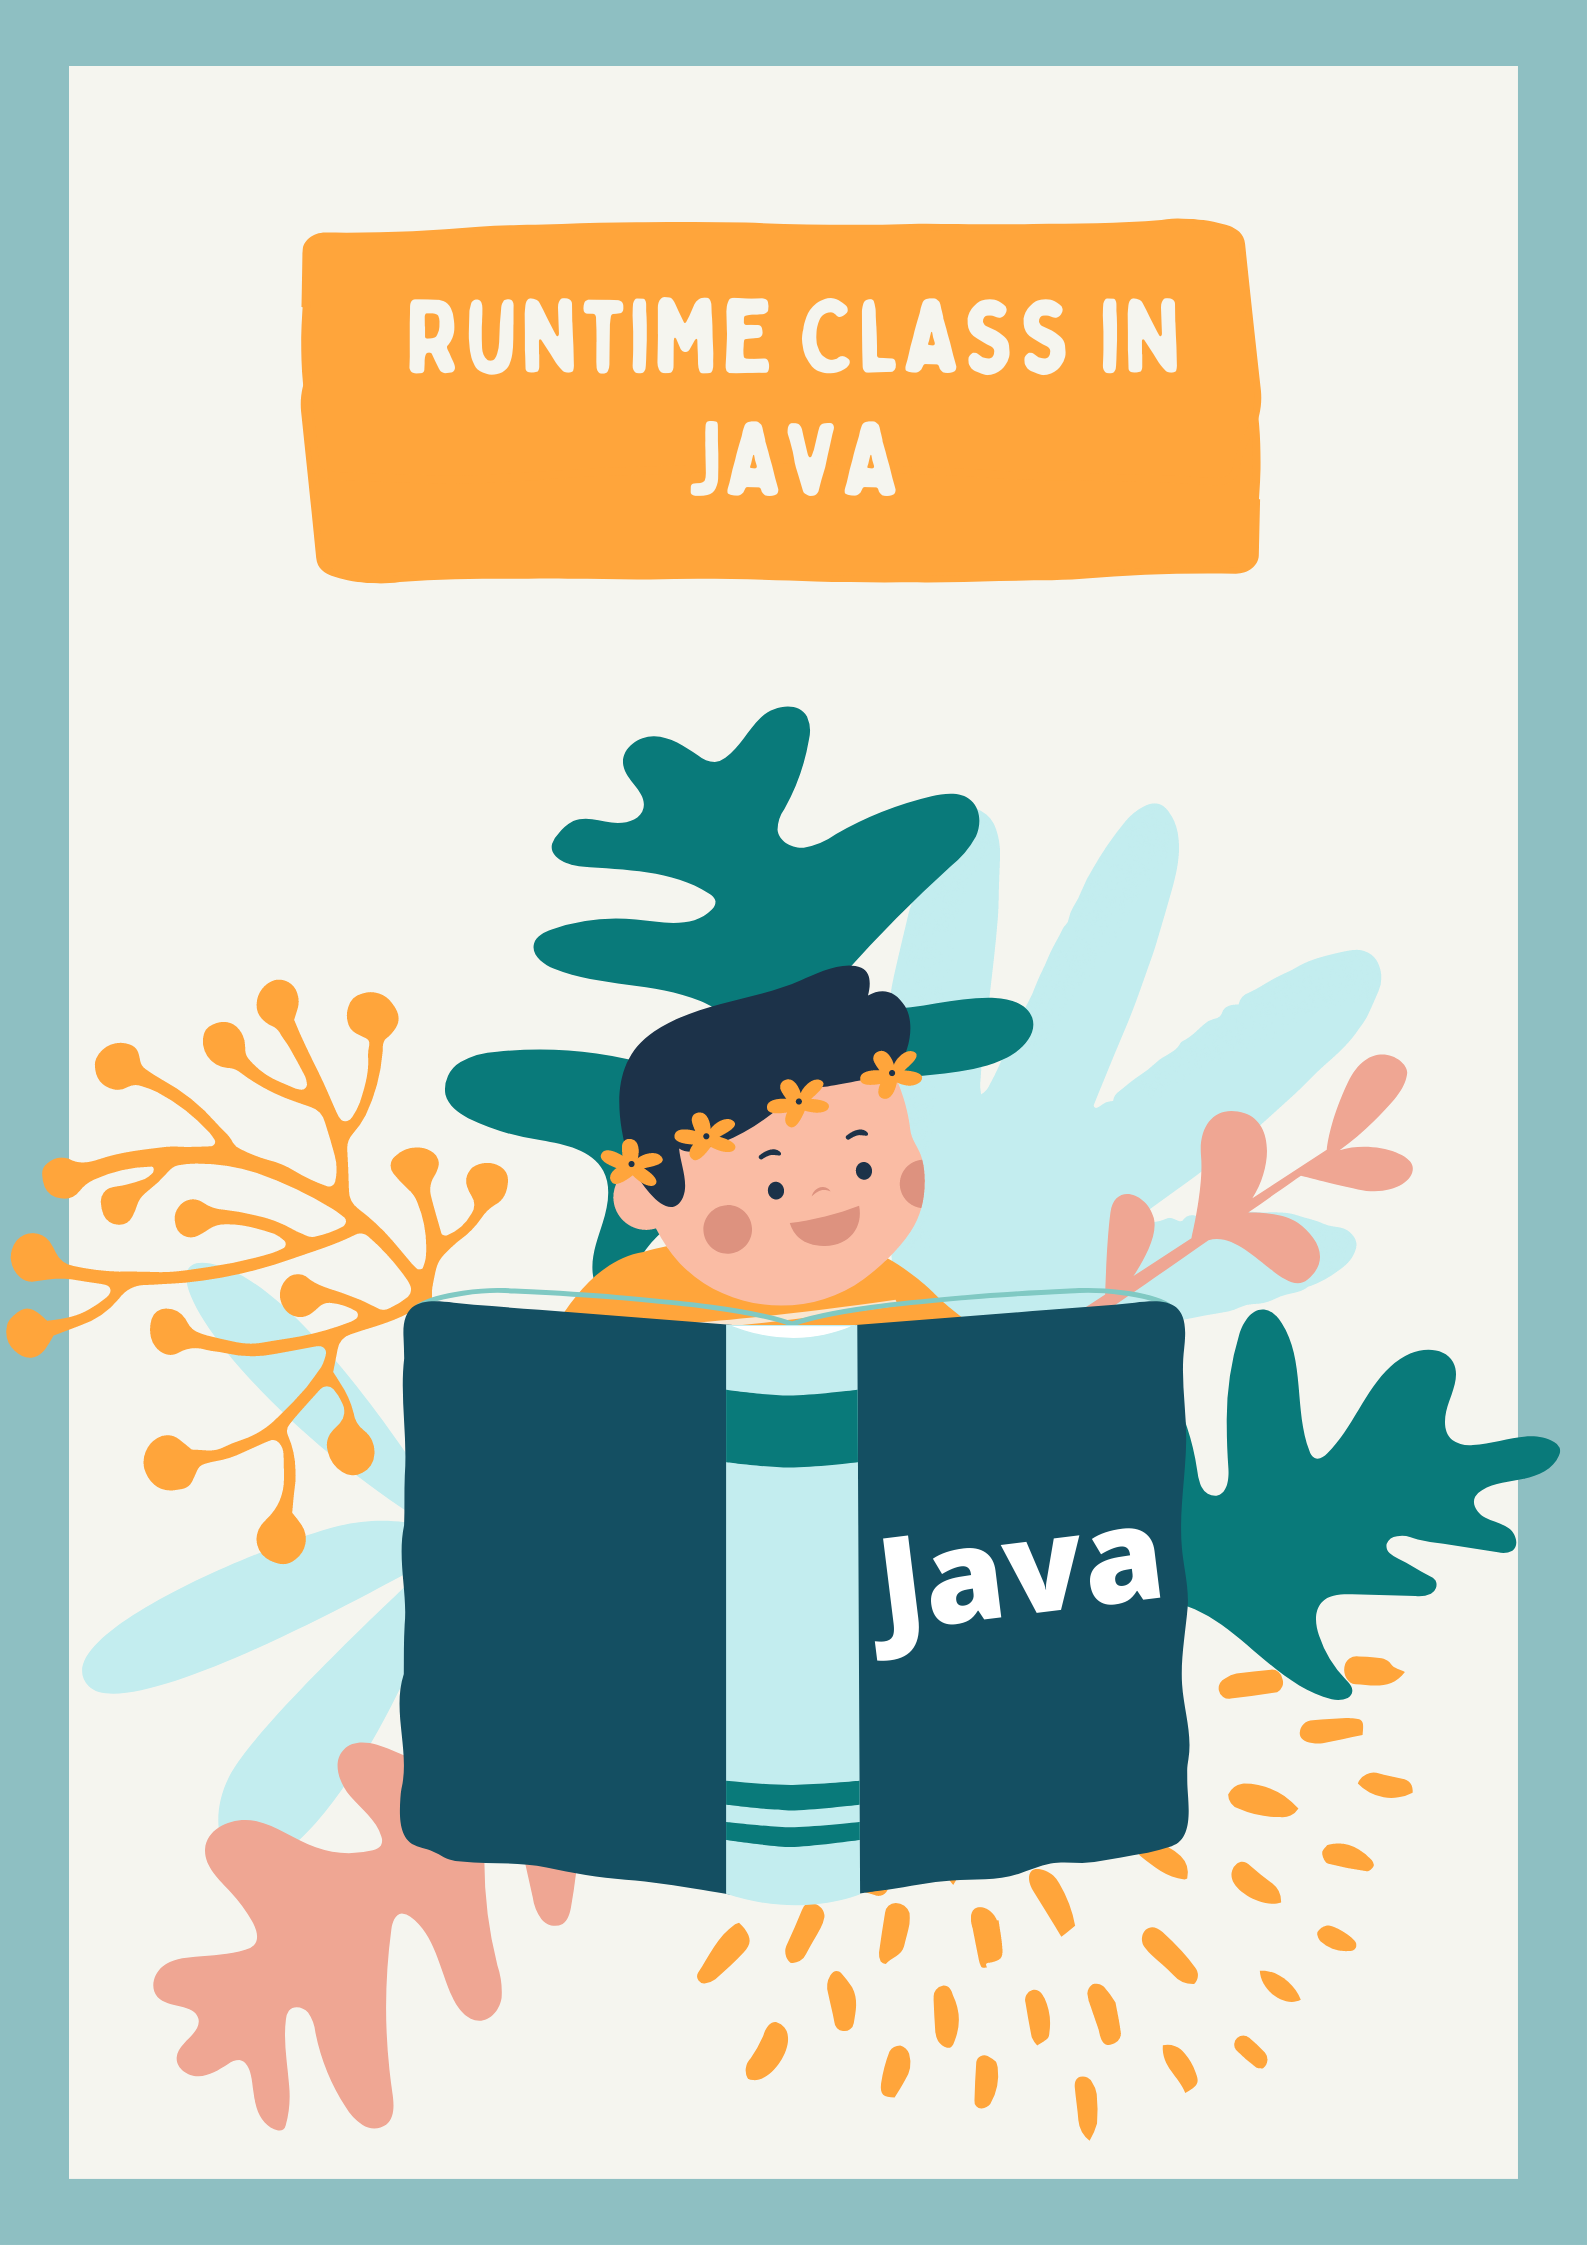 RunTime Class in Java